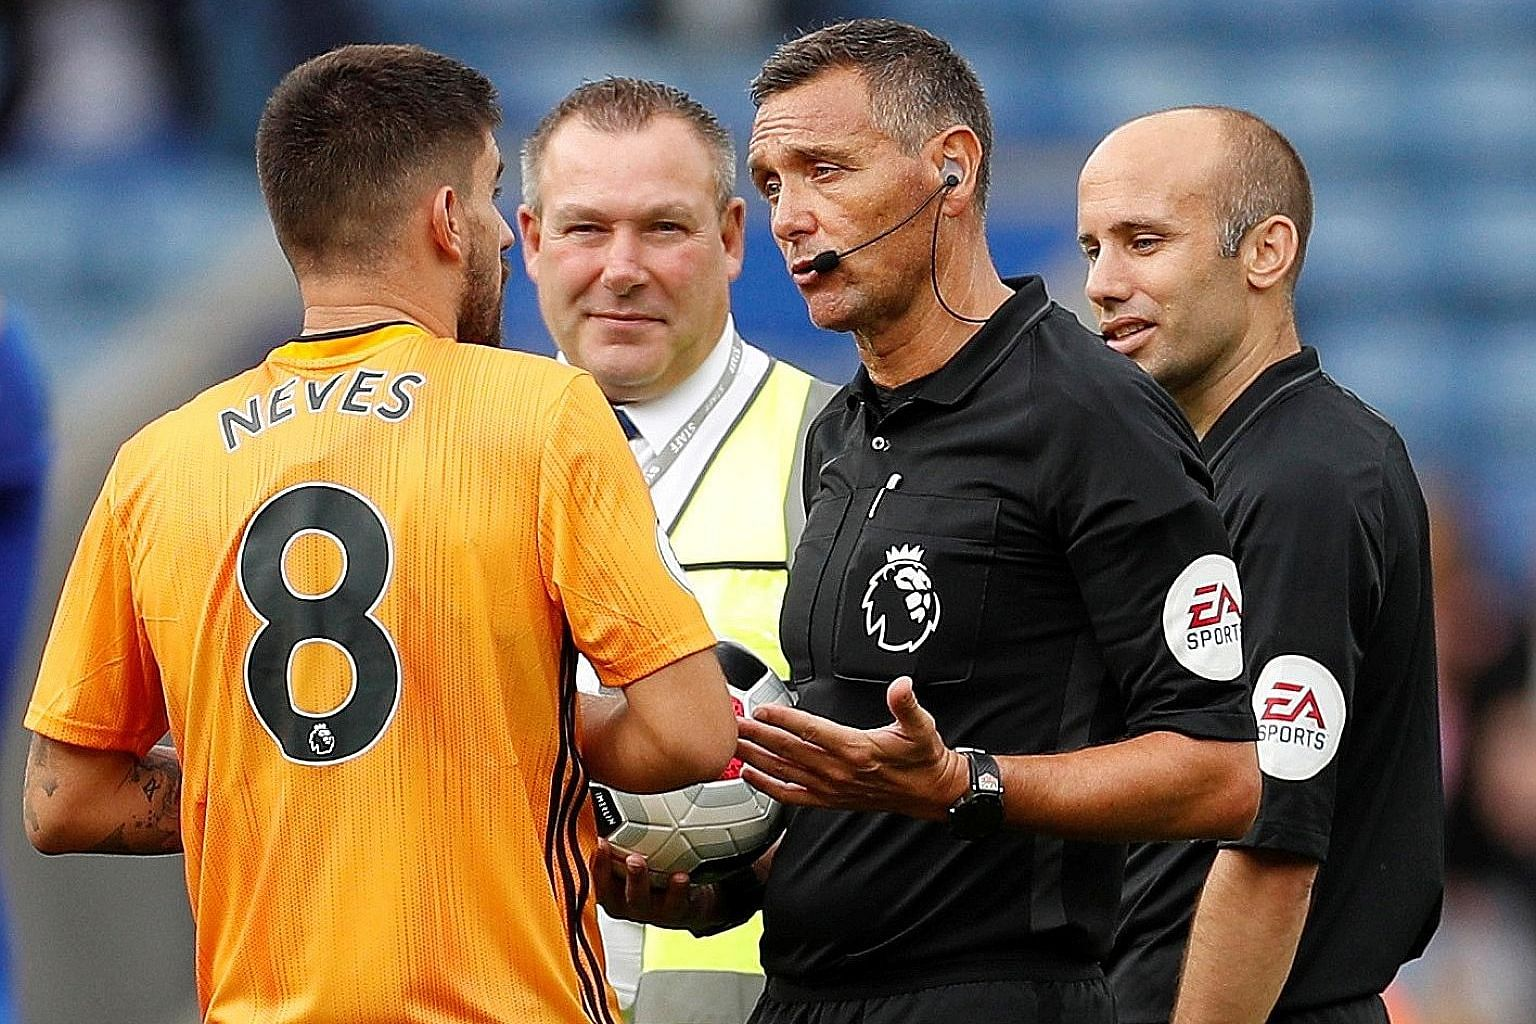 Wolves midfielder Ruben Neves protesting referee Andre Marriner's decision to rule out a goal following a VAR review. PHOTO: REUTERS